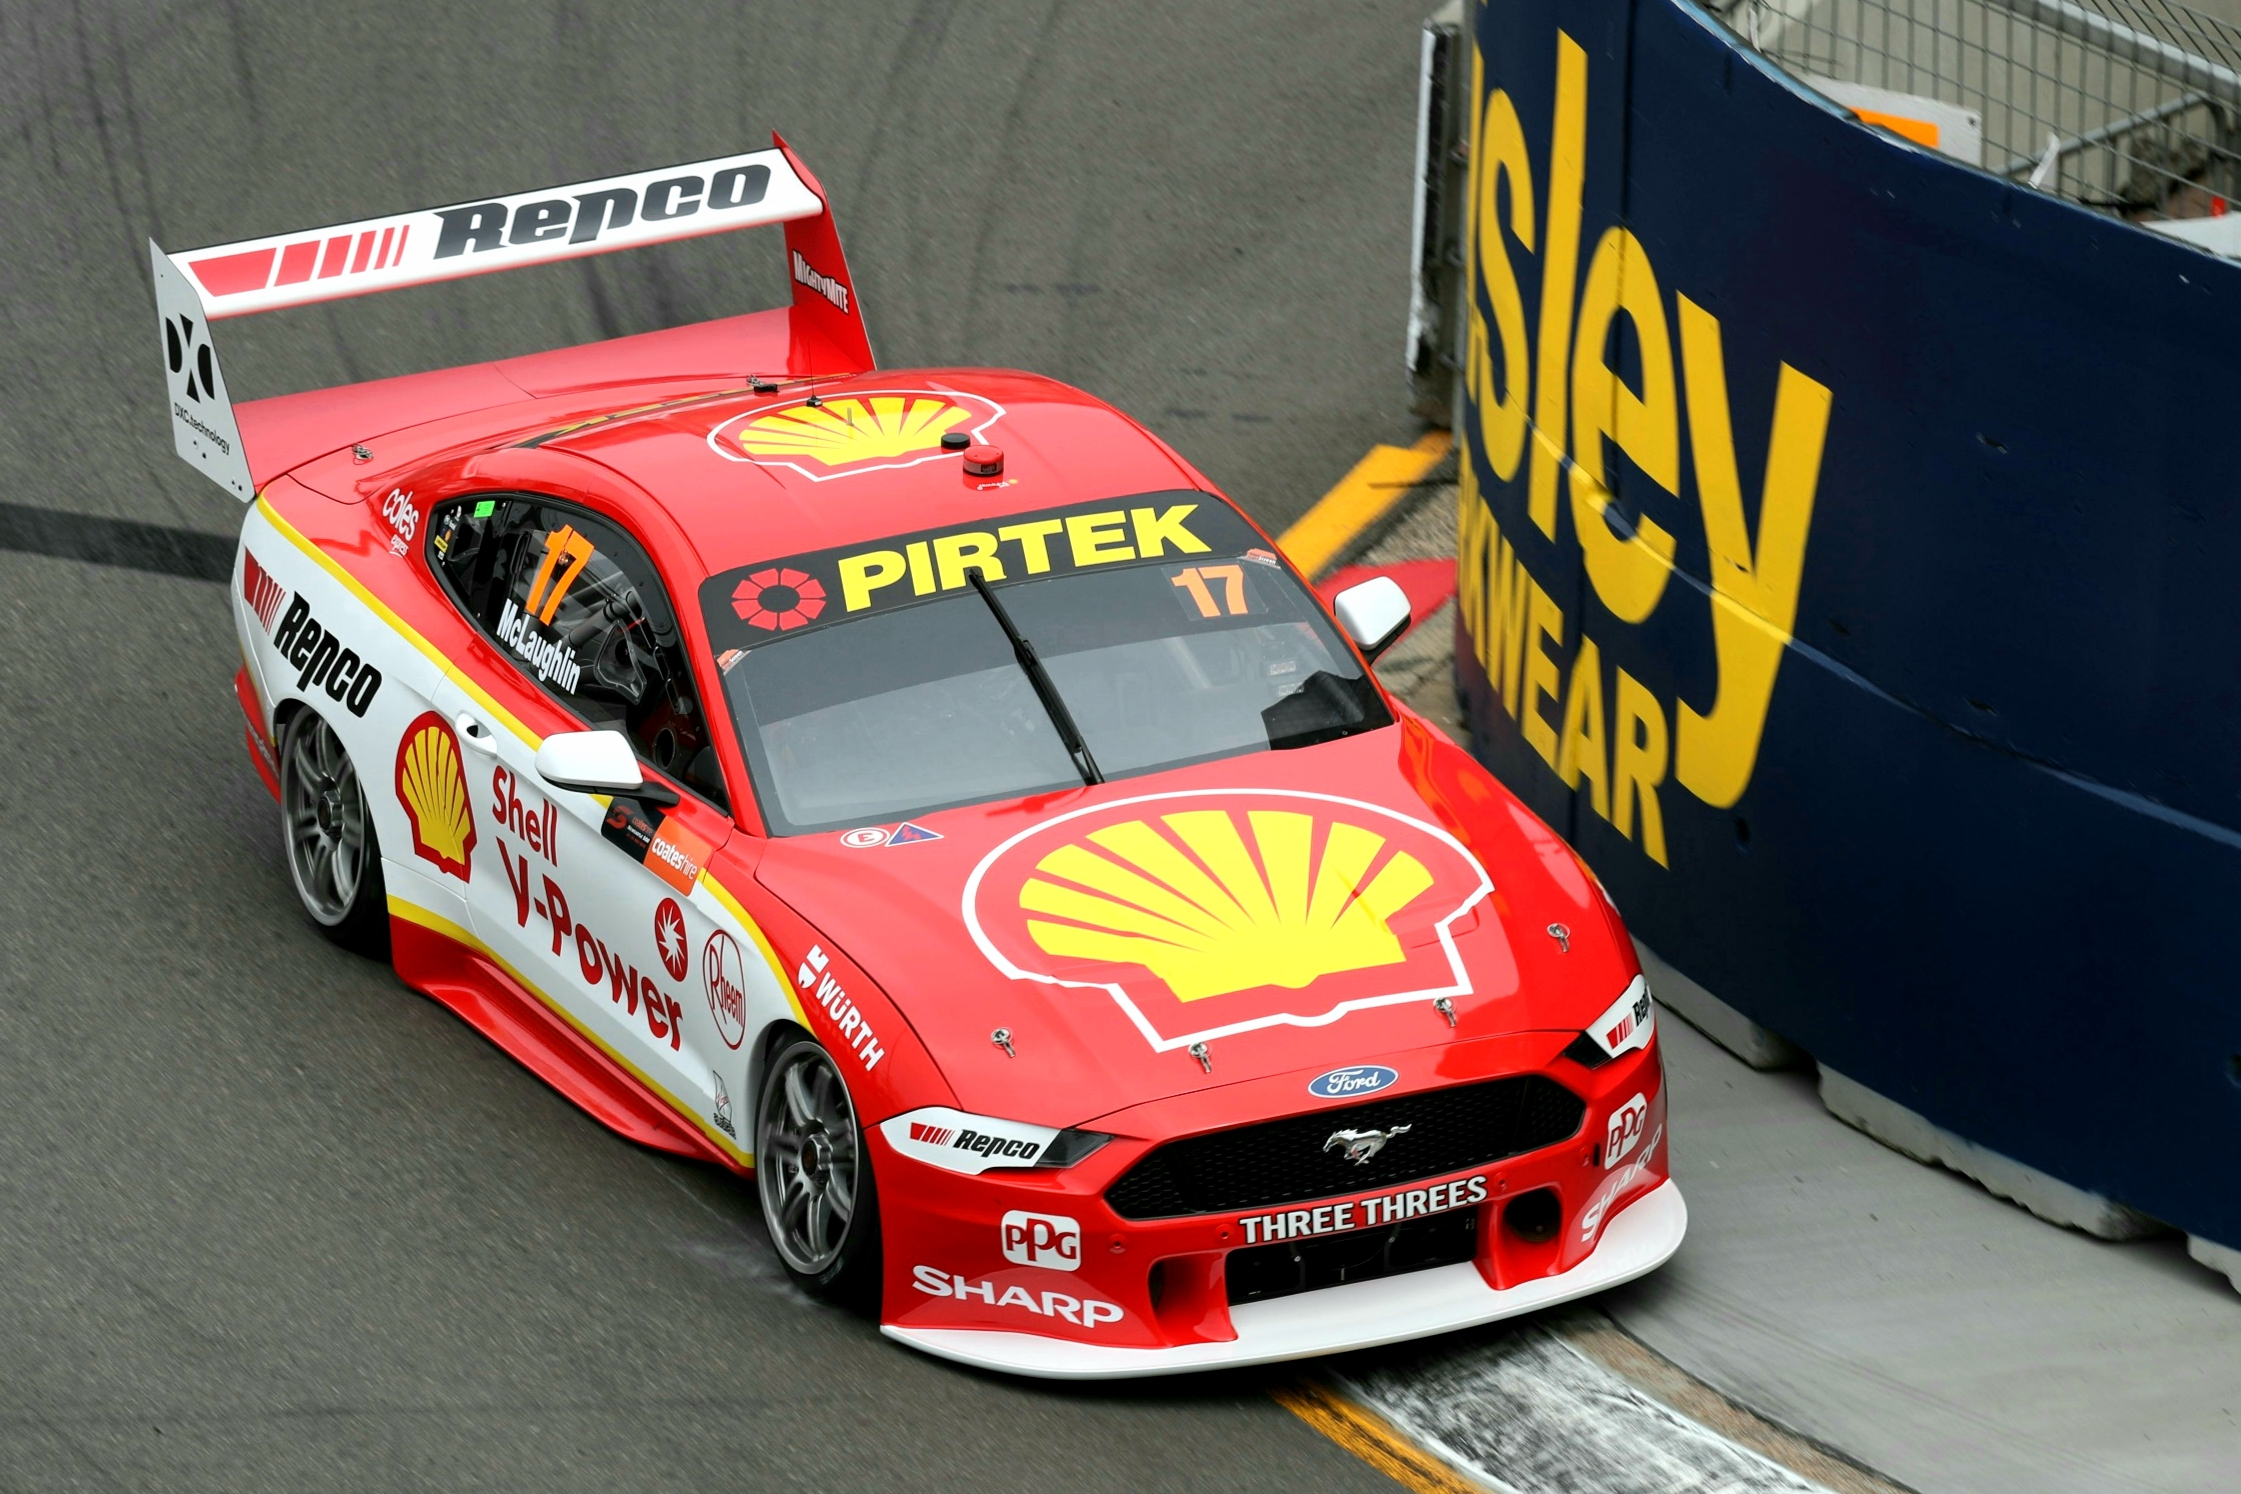 McLaughlin pips Reynolds by a hundredth in Practice 1 - Speedcafe